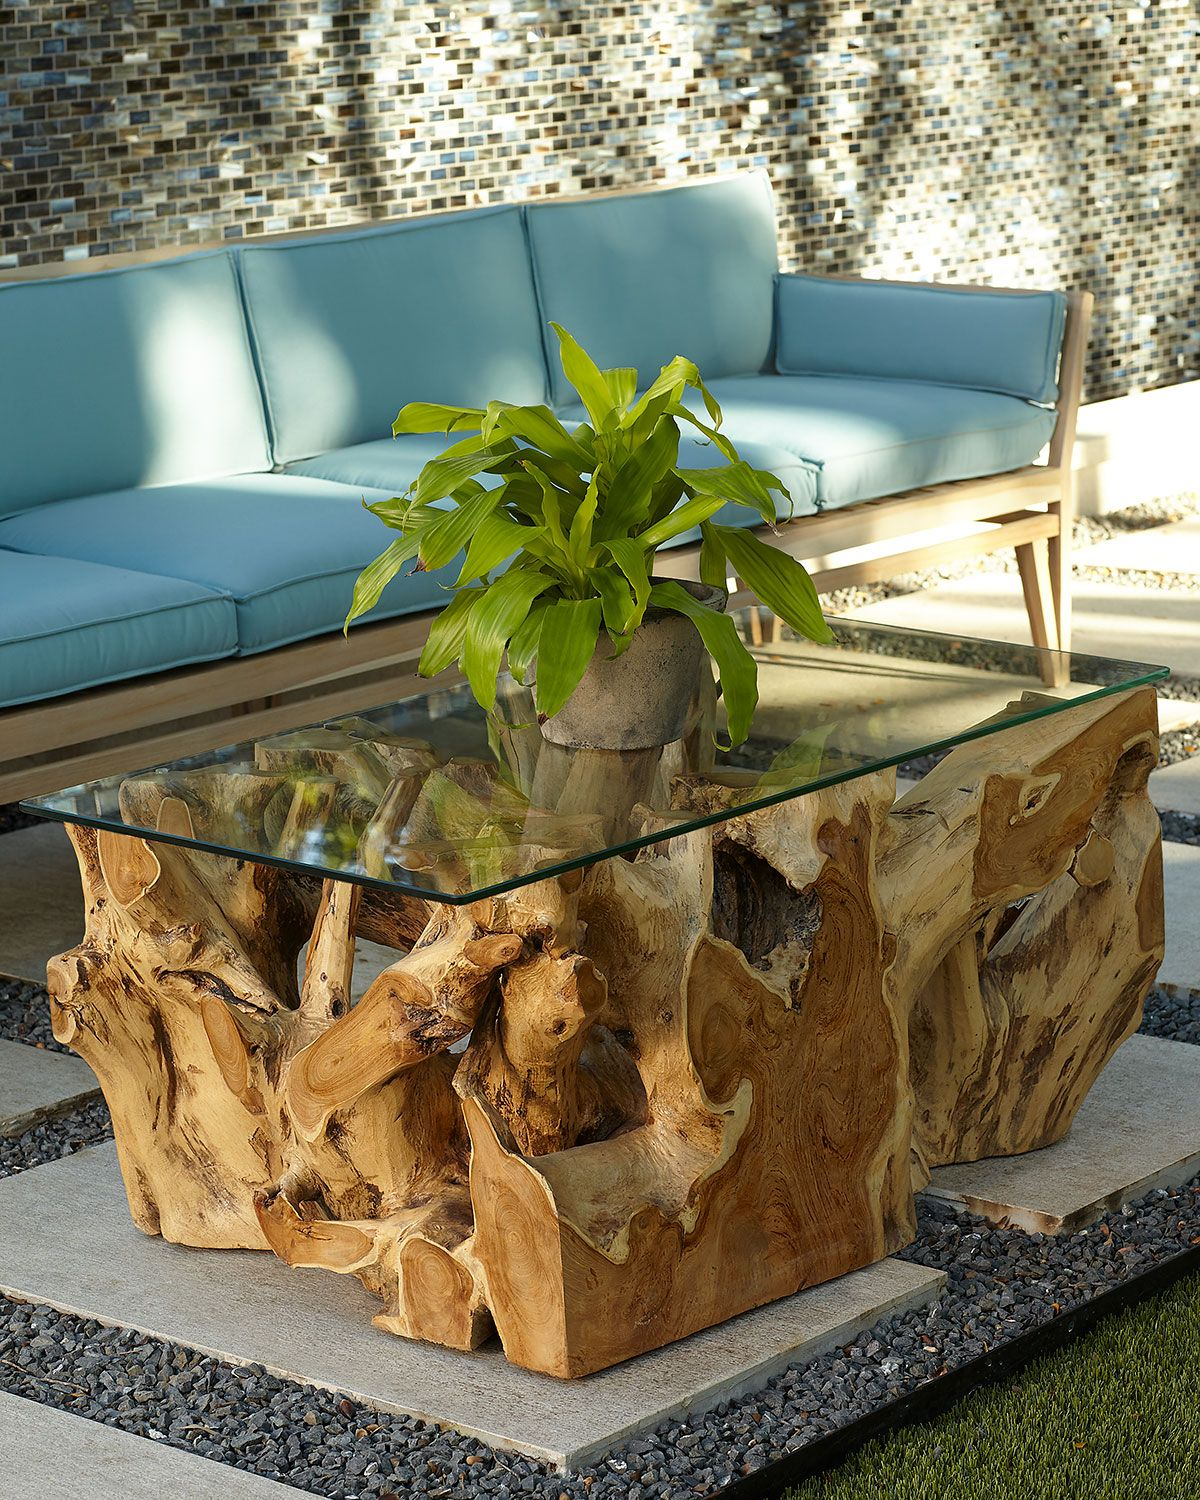 Teak Root Coffee Table With Glass Top In 2020 Coffee Table Simple Coffee Table Garden Coffee Table